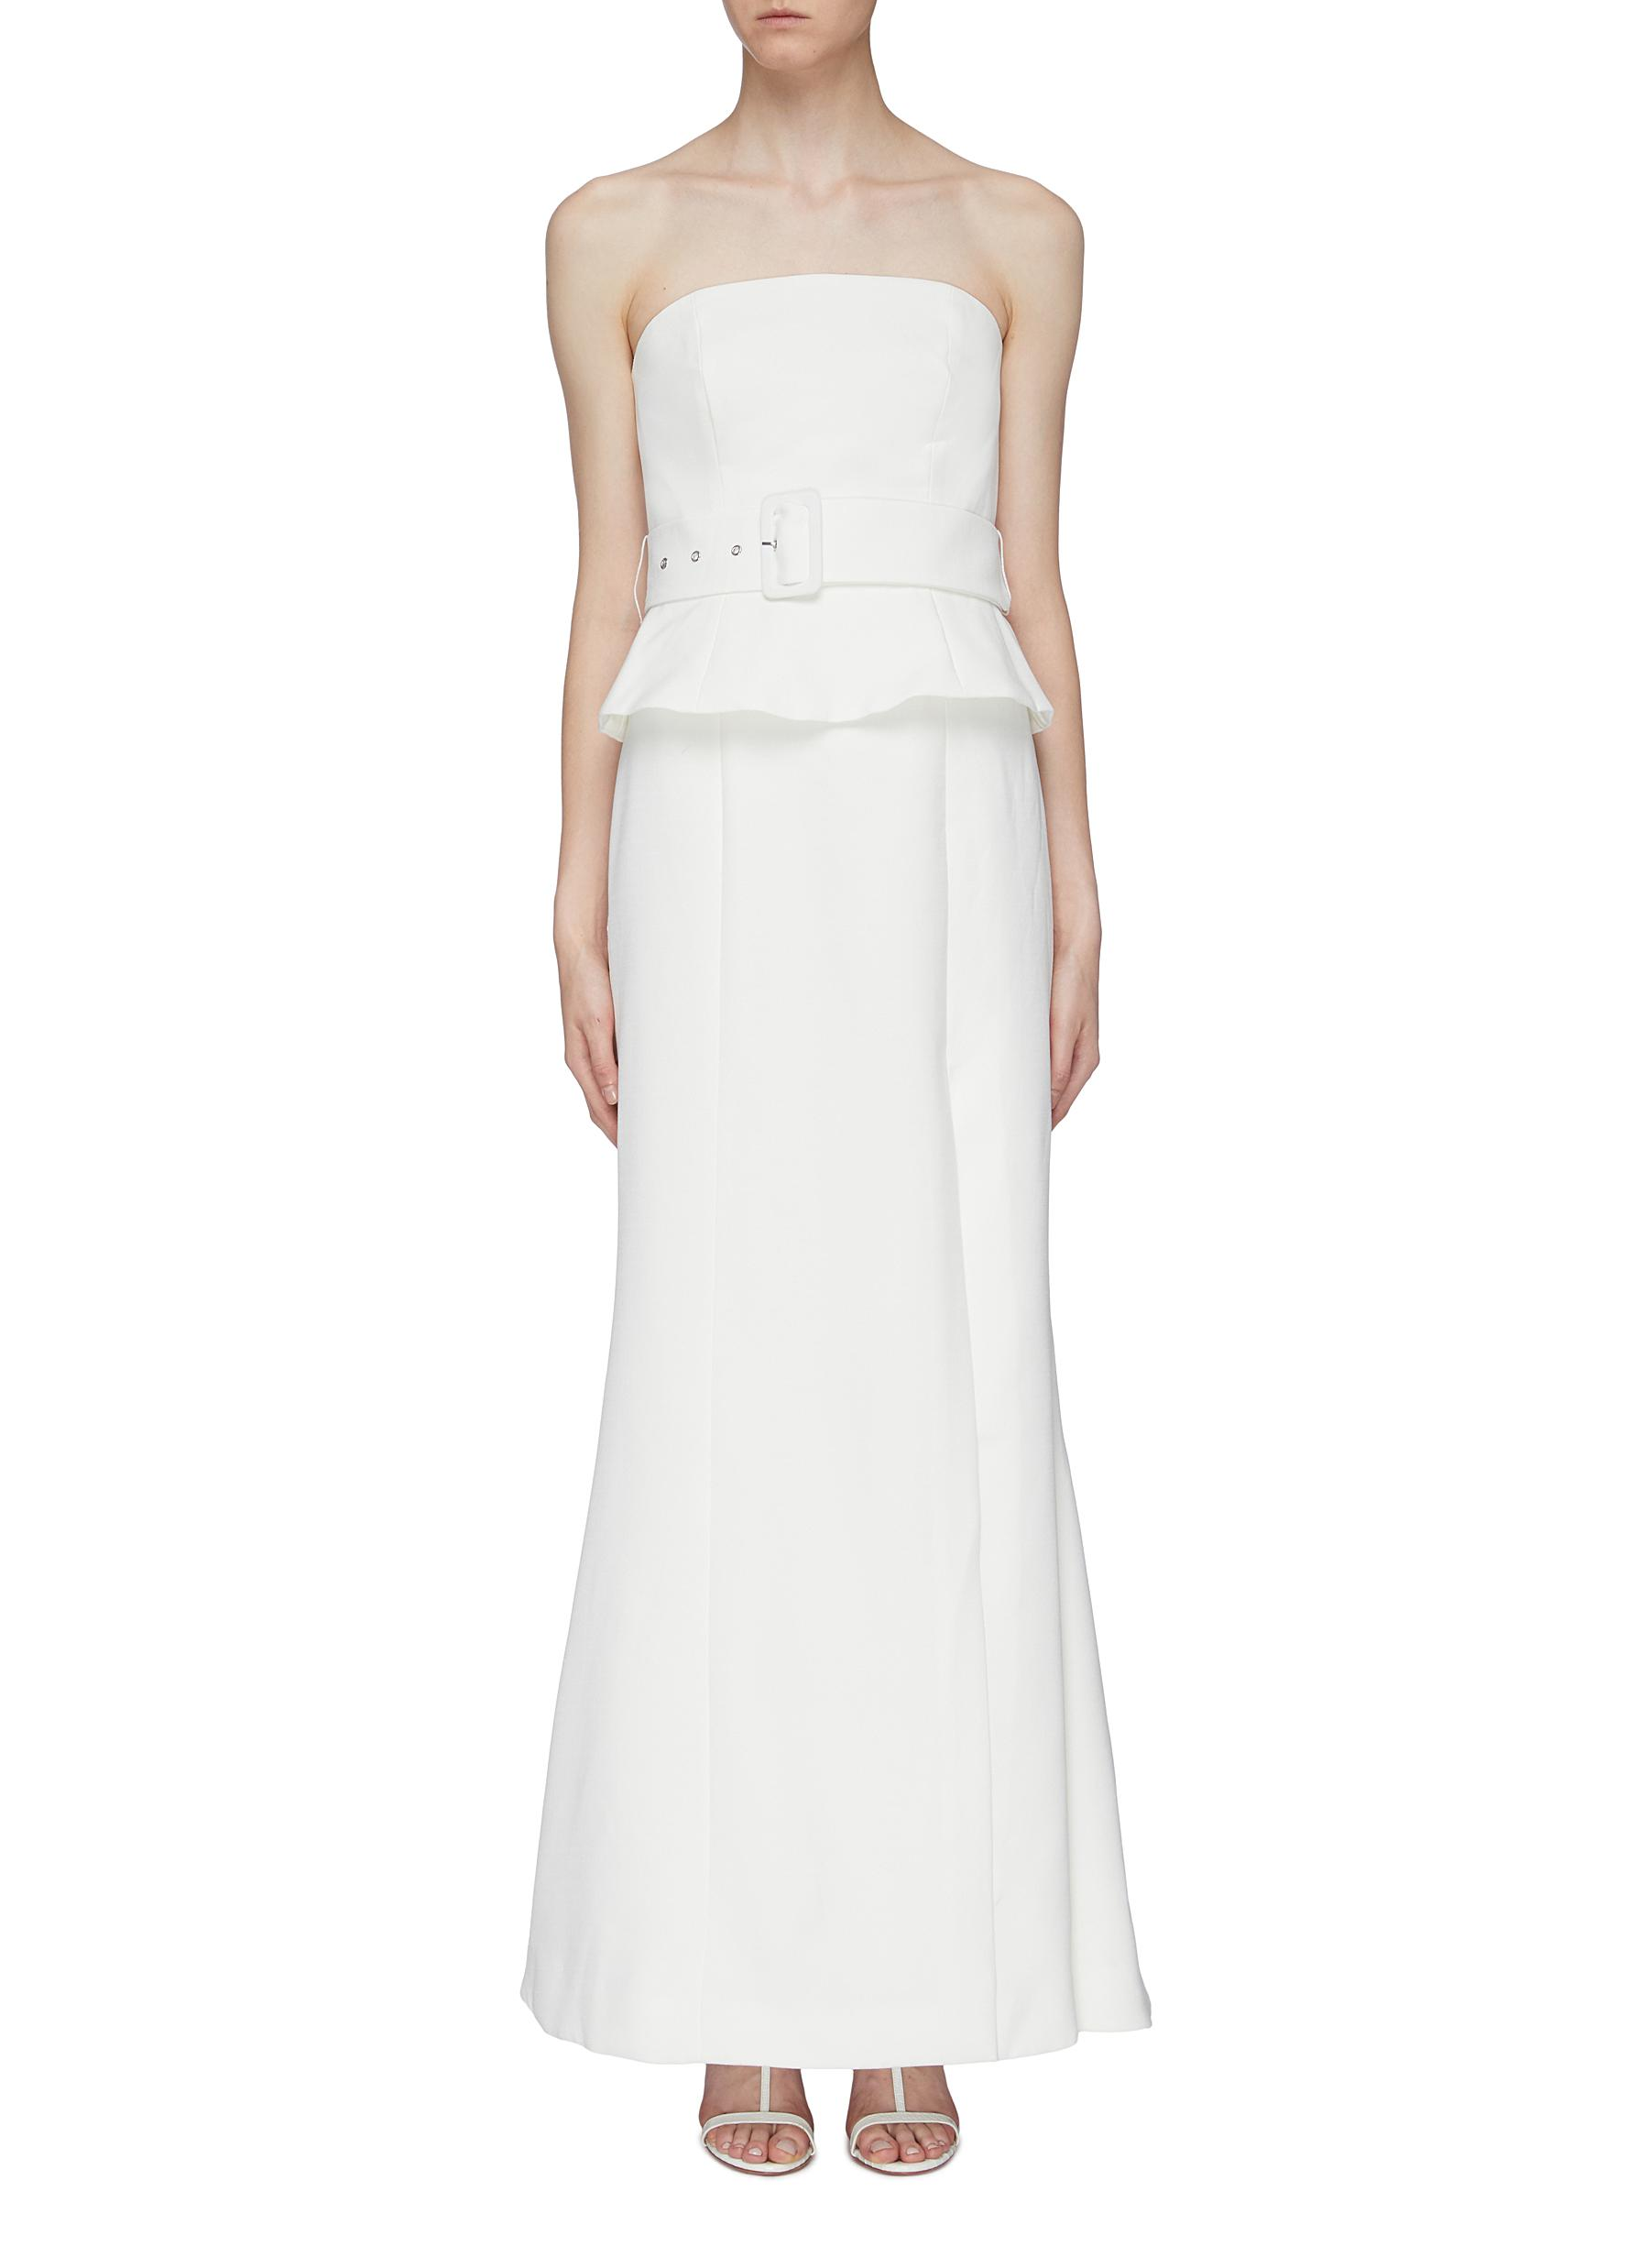 Mode belted peplum strapless gown by C/Meo Collective